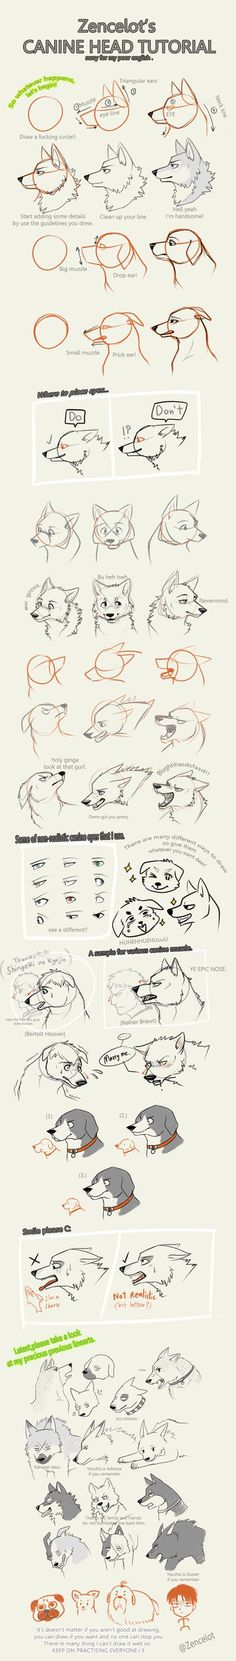 zency_s_canine_head_tutorial_by_zencelot-d6rjtt5.png 337×2,373 pixels